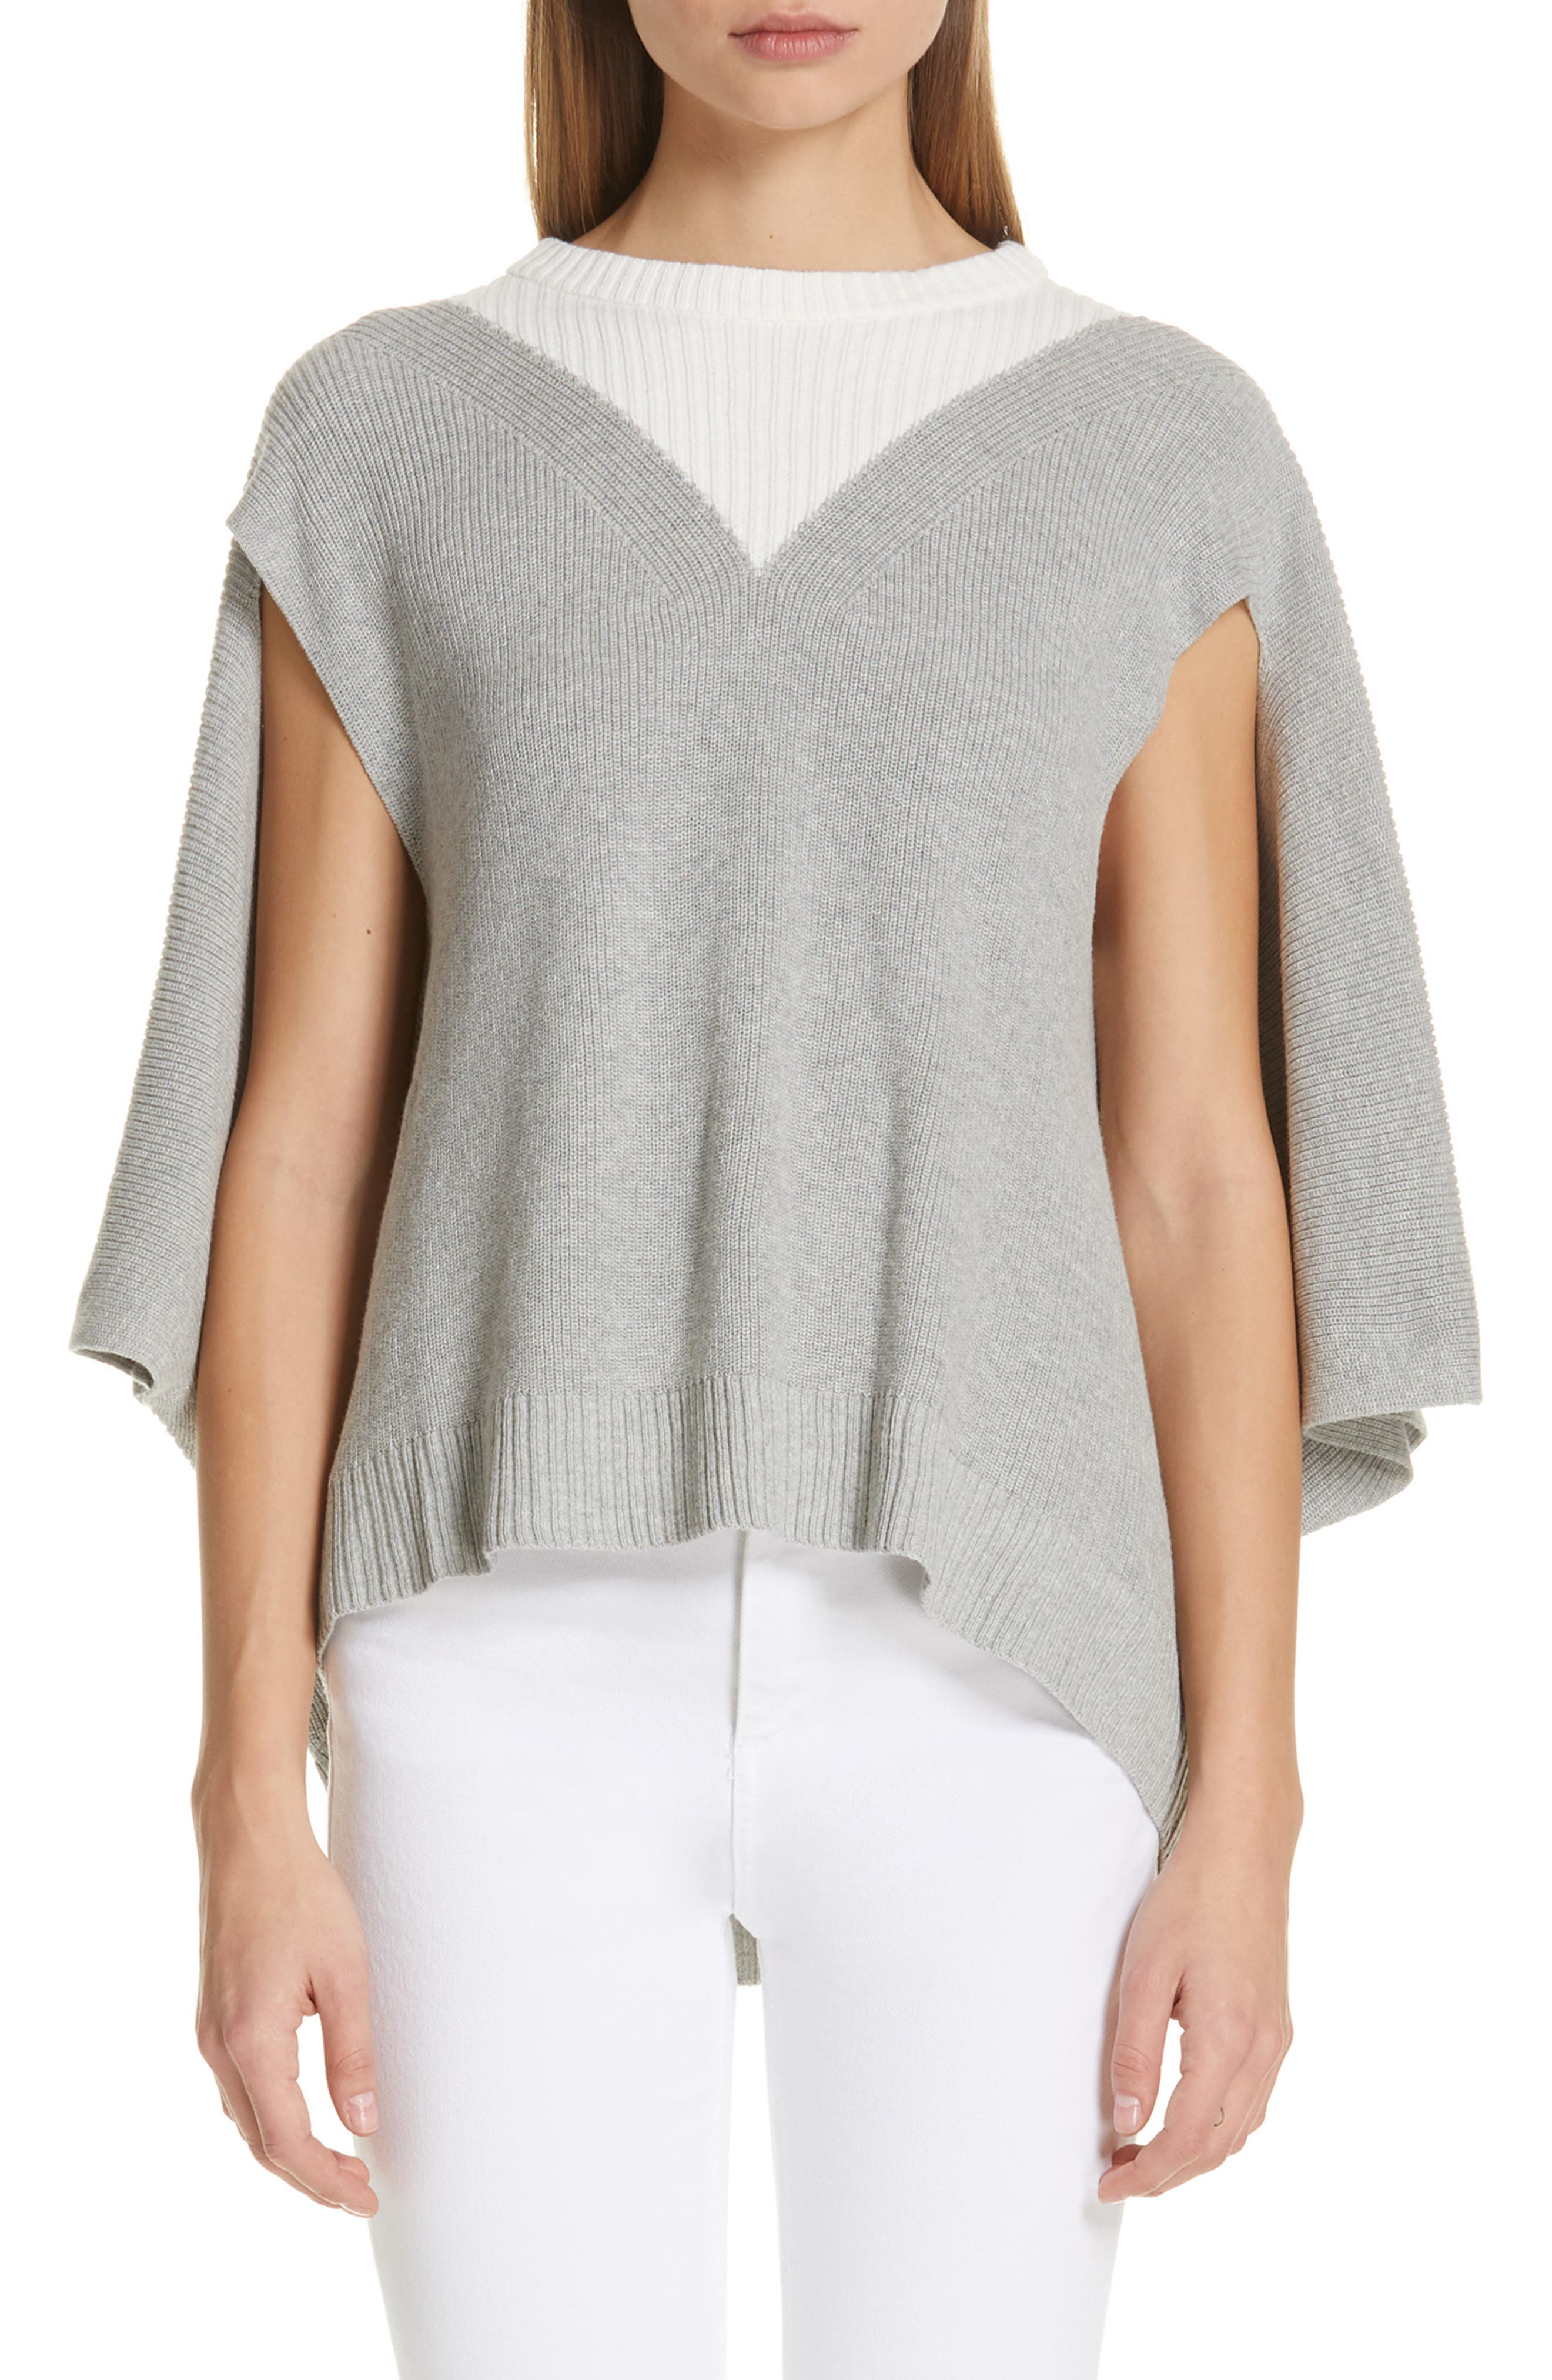 PALMER//HARDING Dual Sweater in Grey/ Off White